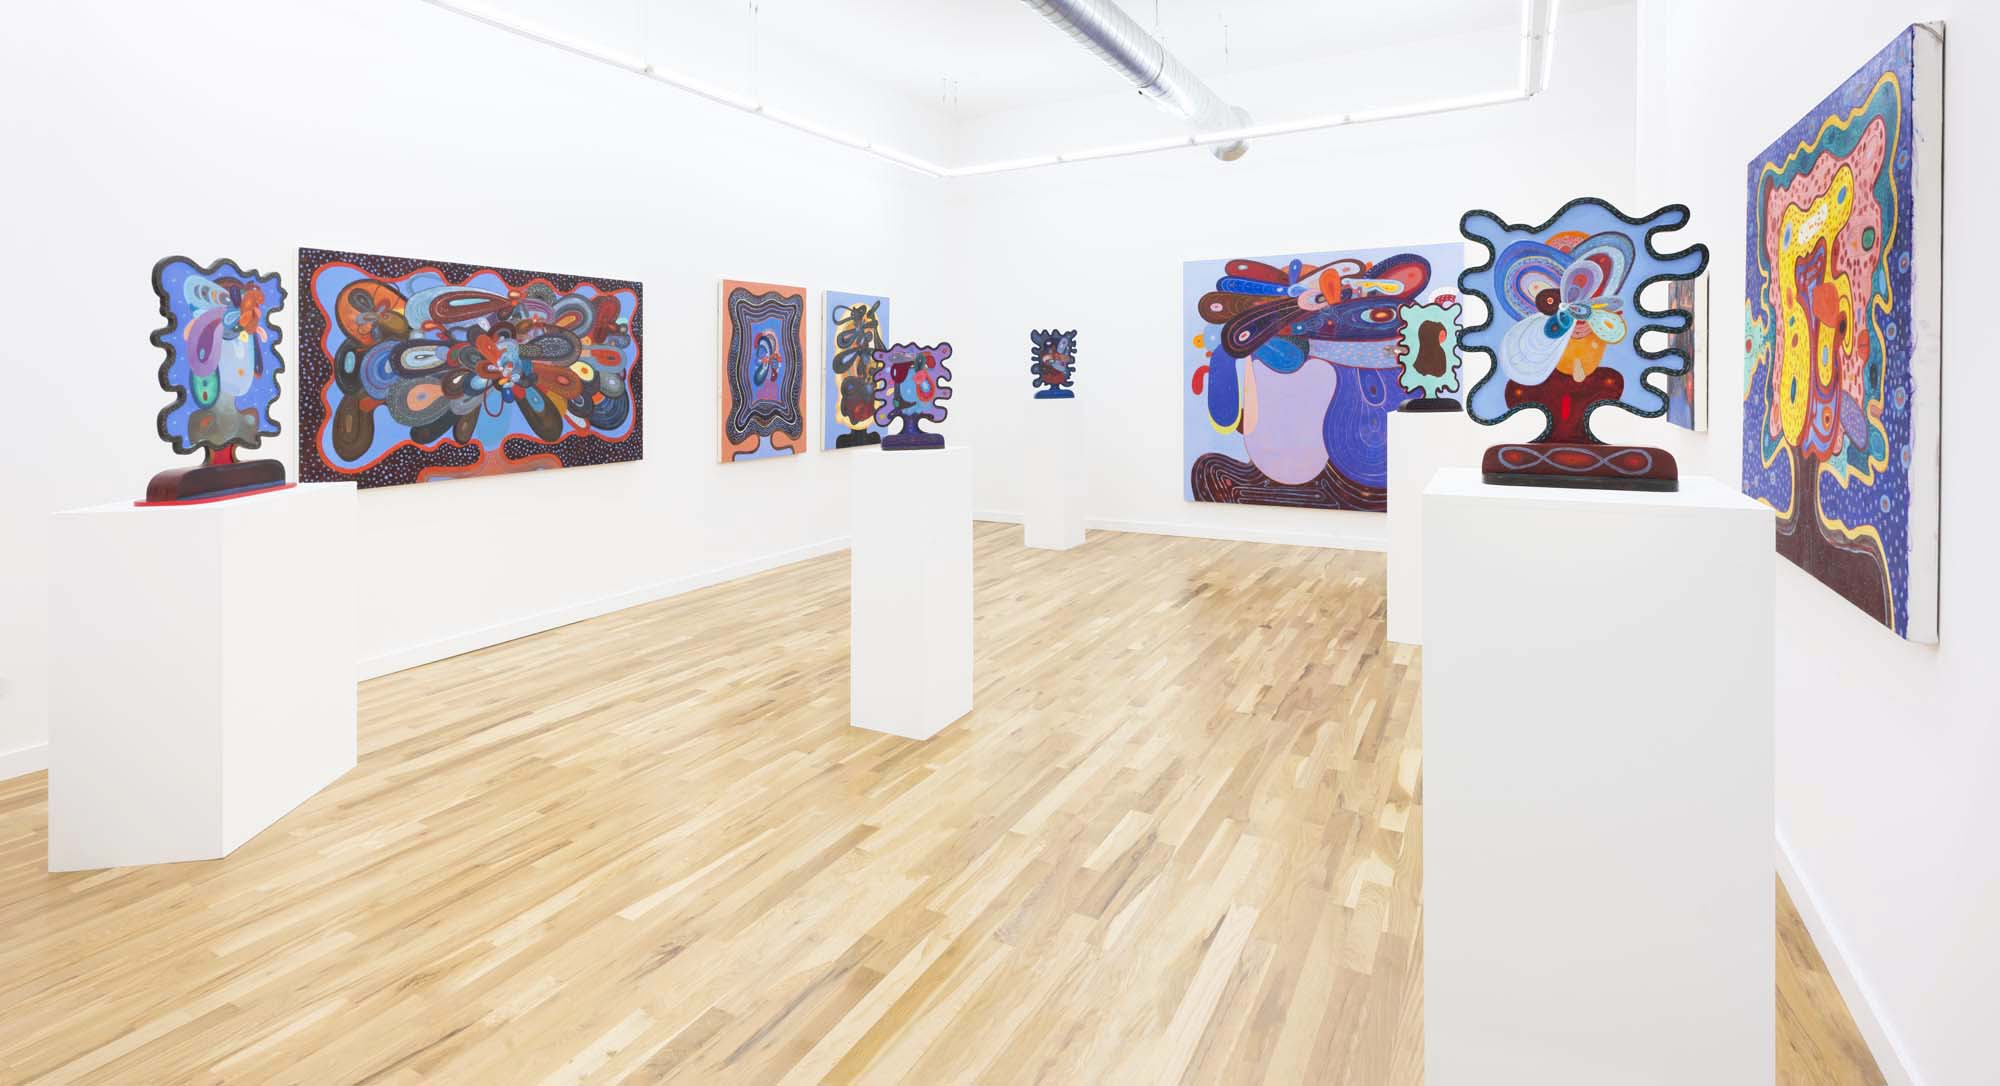 """Installation view of """"New Work"""", April 13 to May 26, 2018, photograph by James Prinz"""